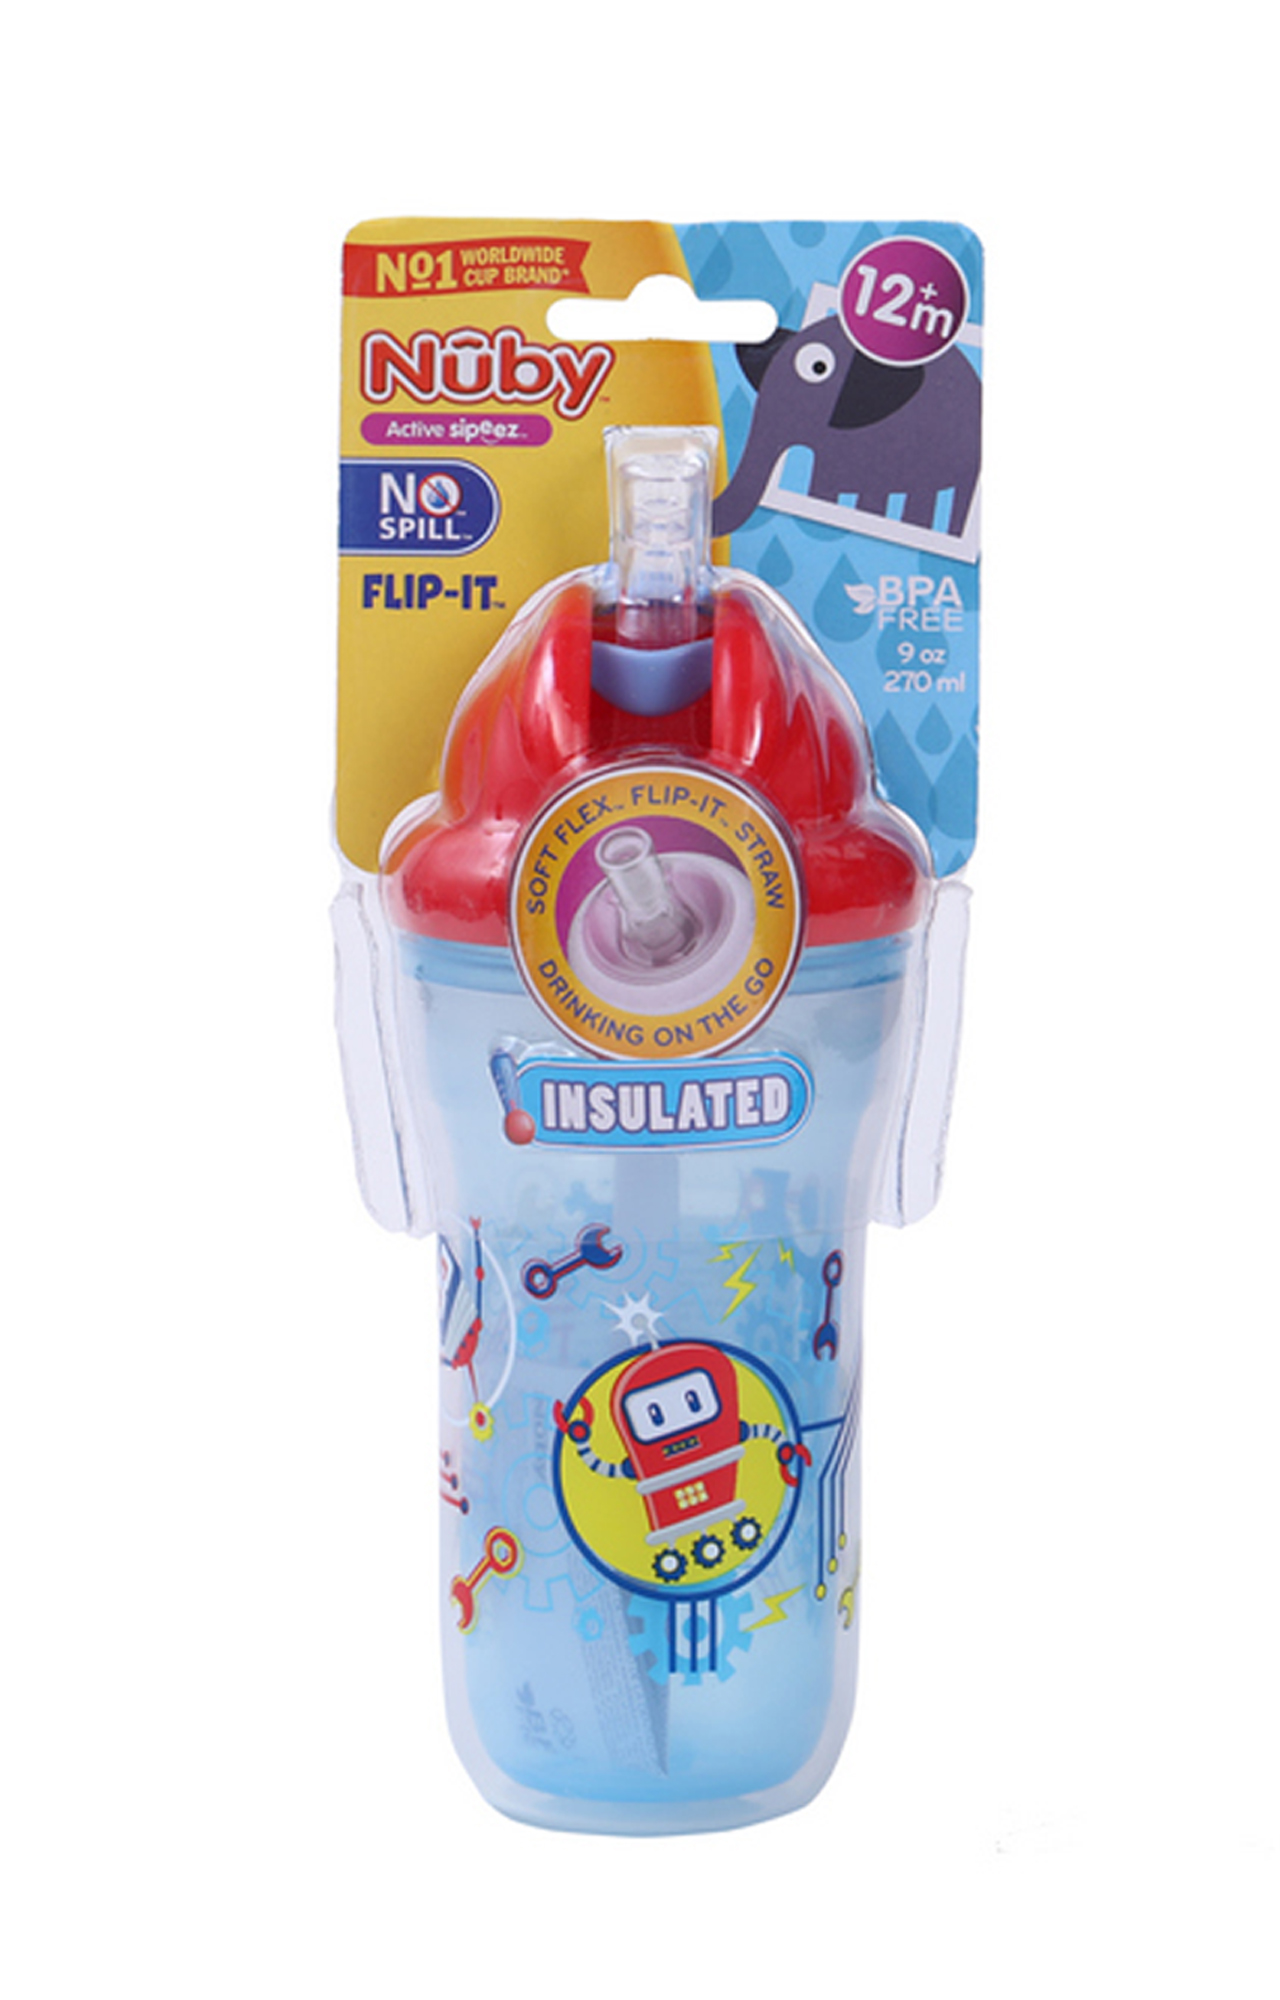 Mothercare | Nuby Insulated Flip-It Straw Active Sipeez 270ml Blue